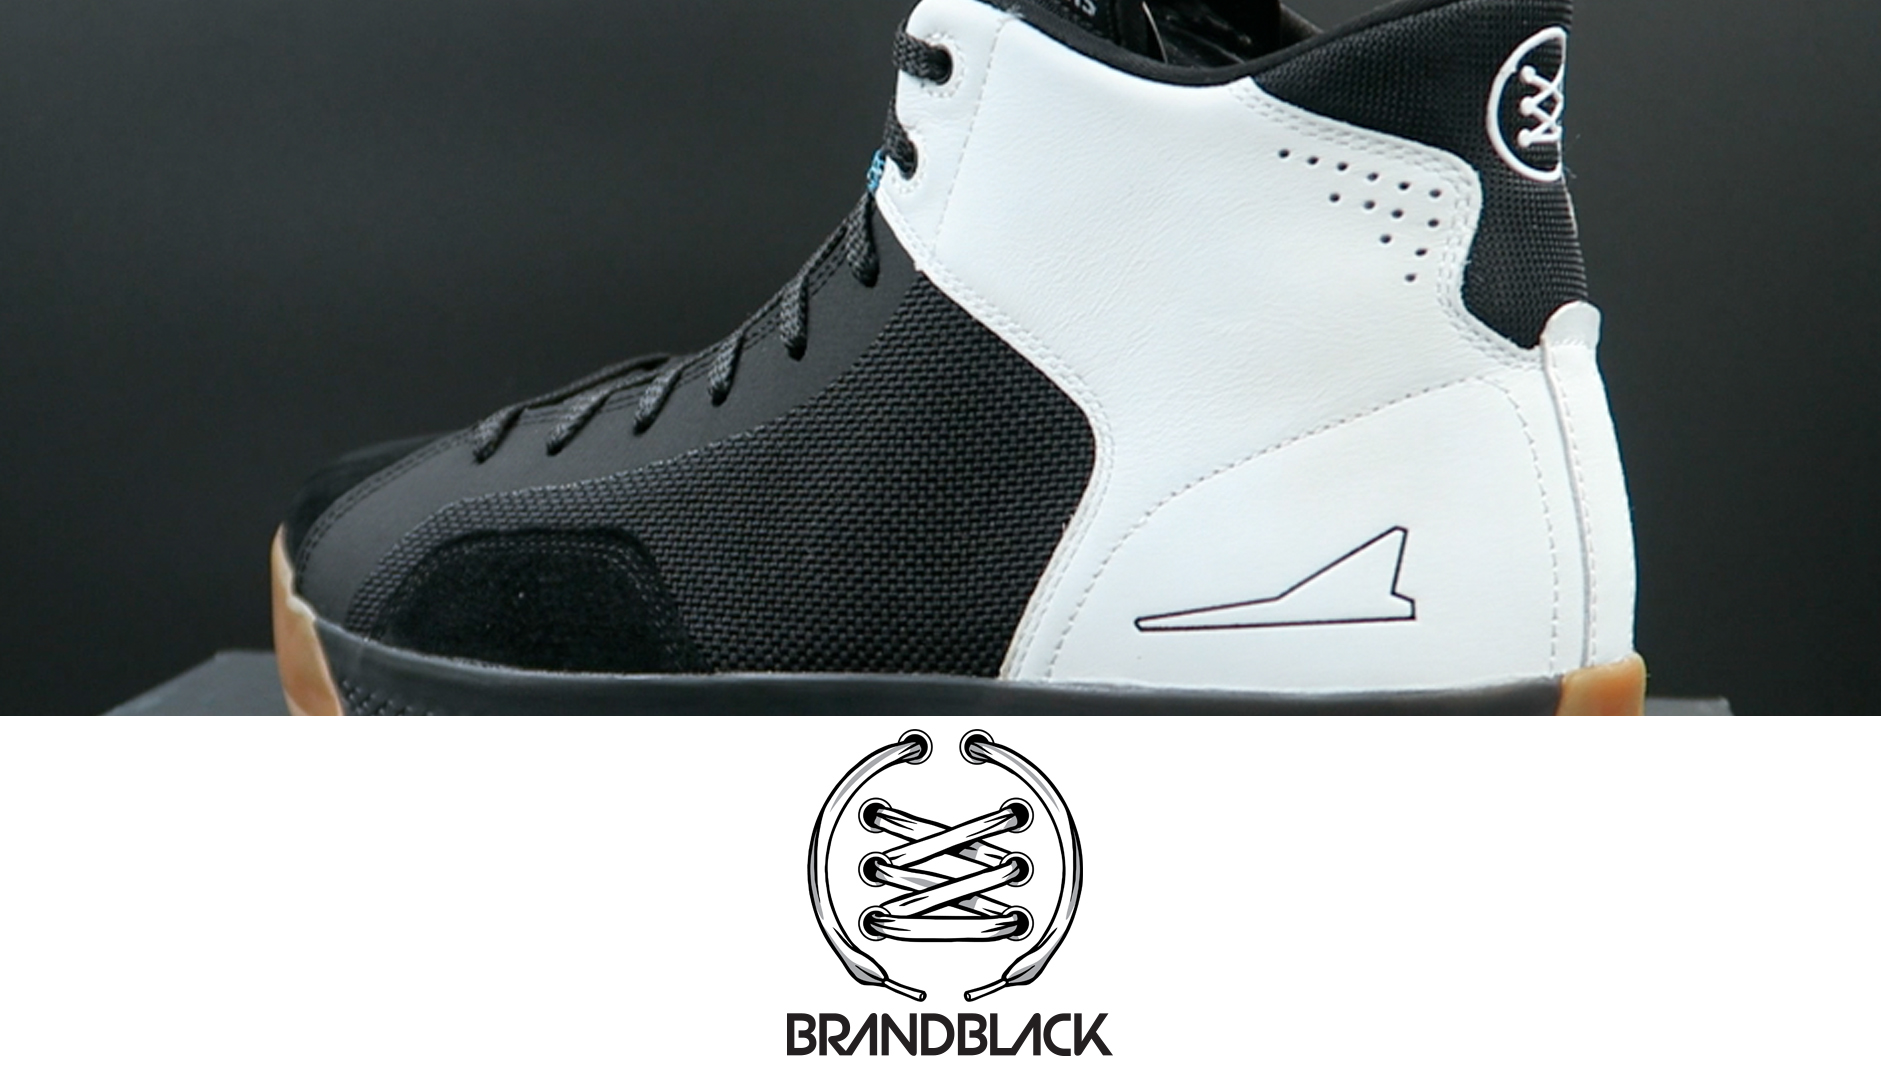 Everything You Need to Know About the BrandBlack X WearTesters Ether